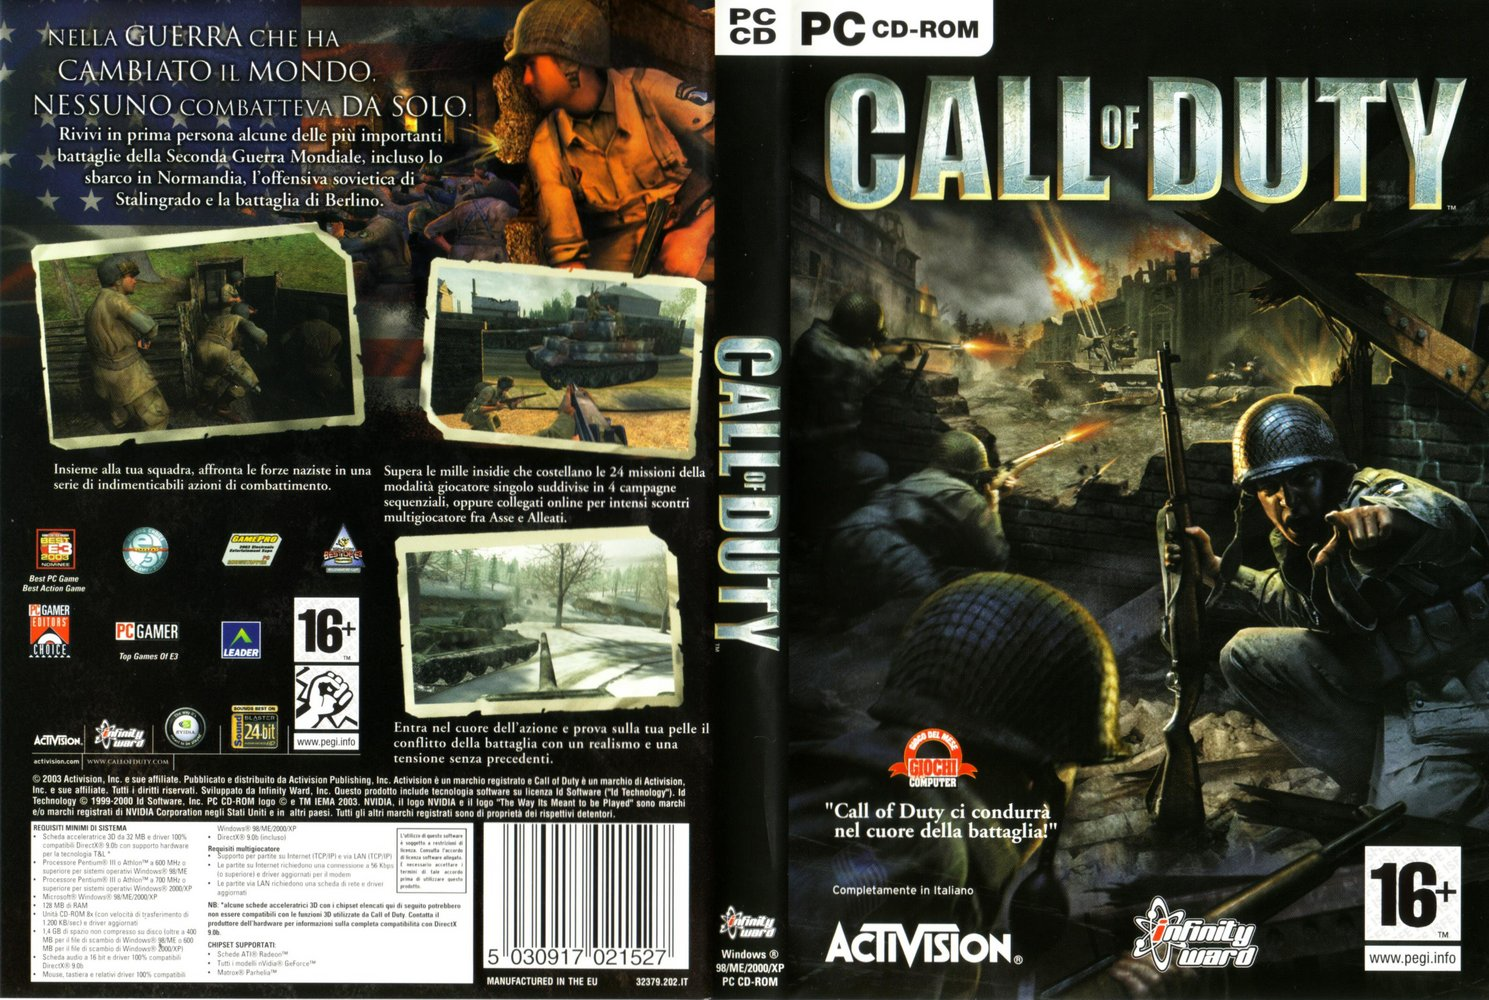 call of duty 1 download pc completo gratis